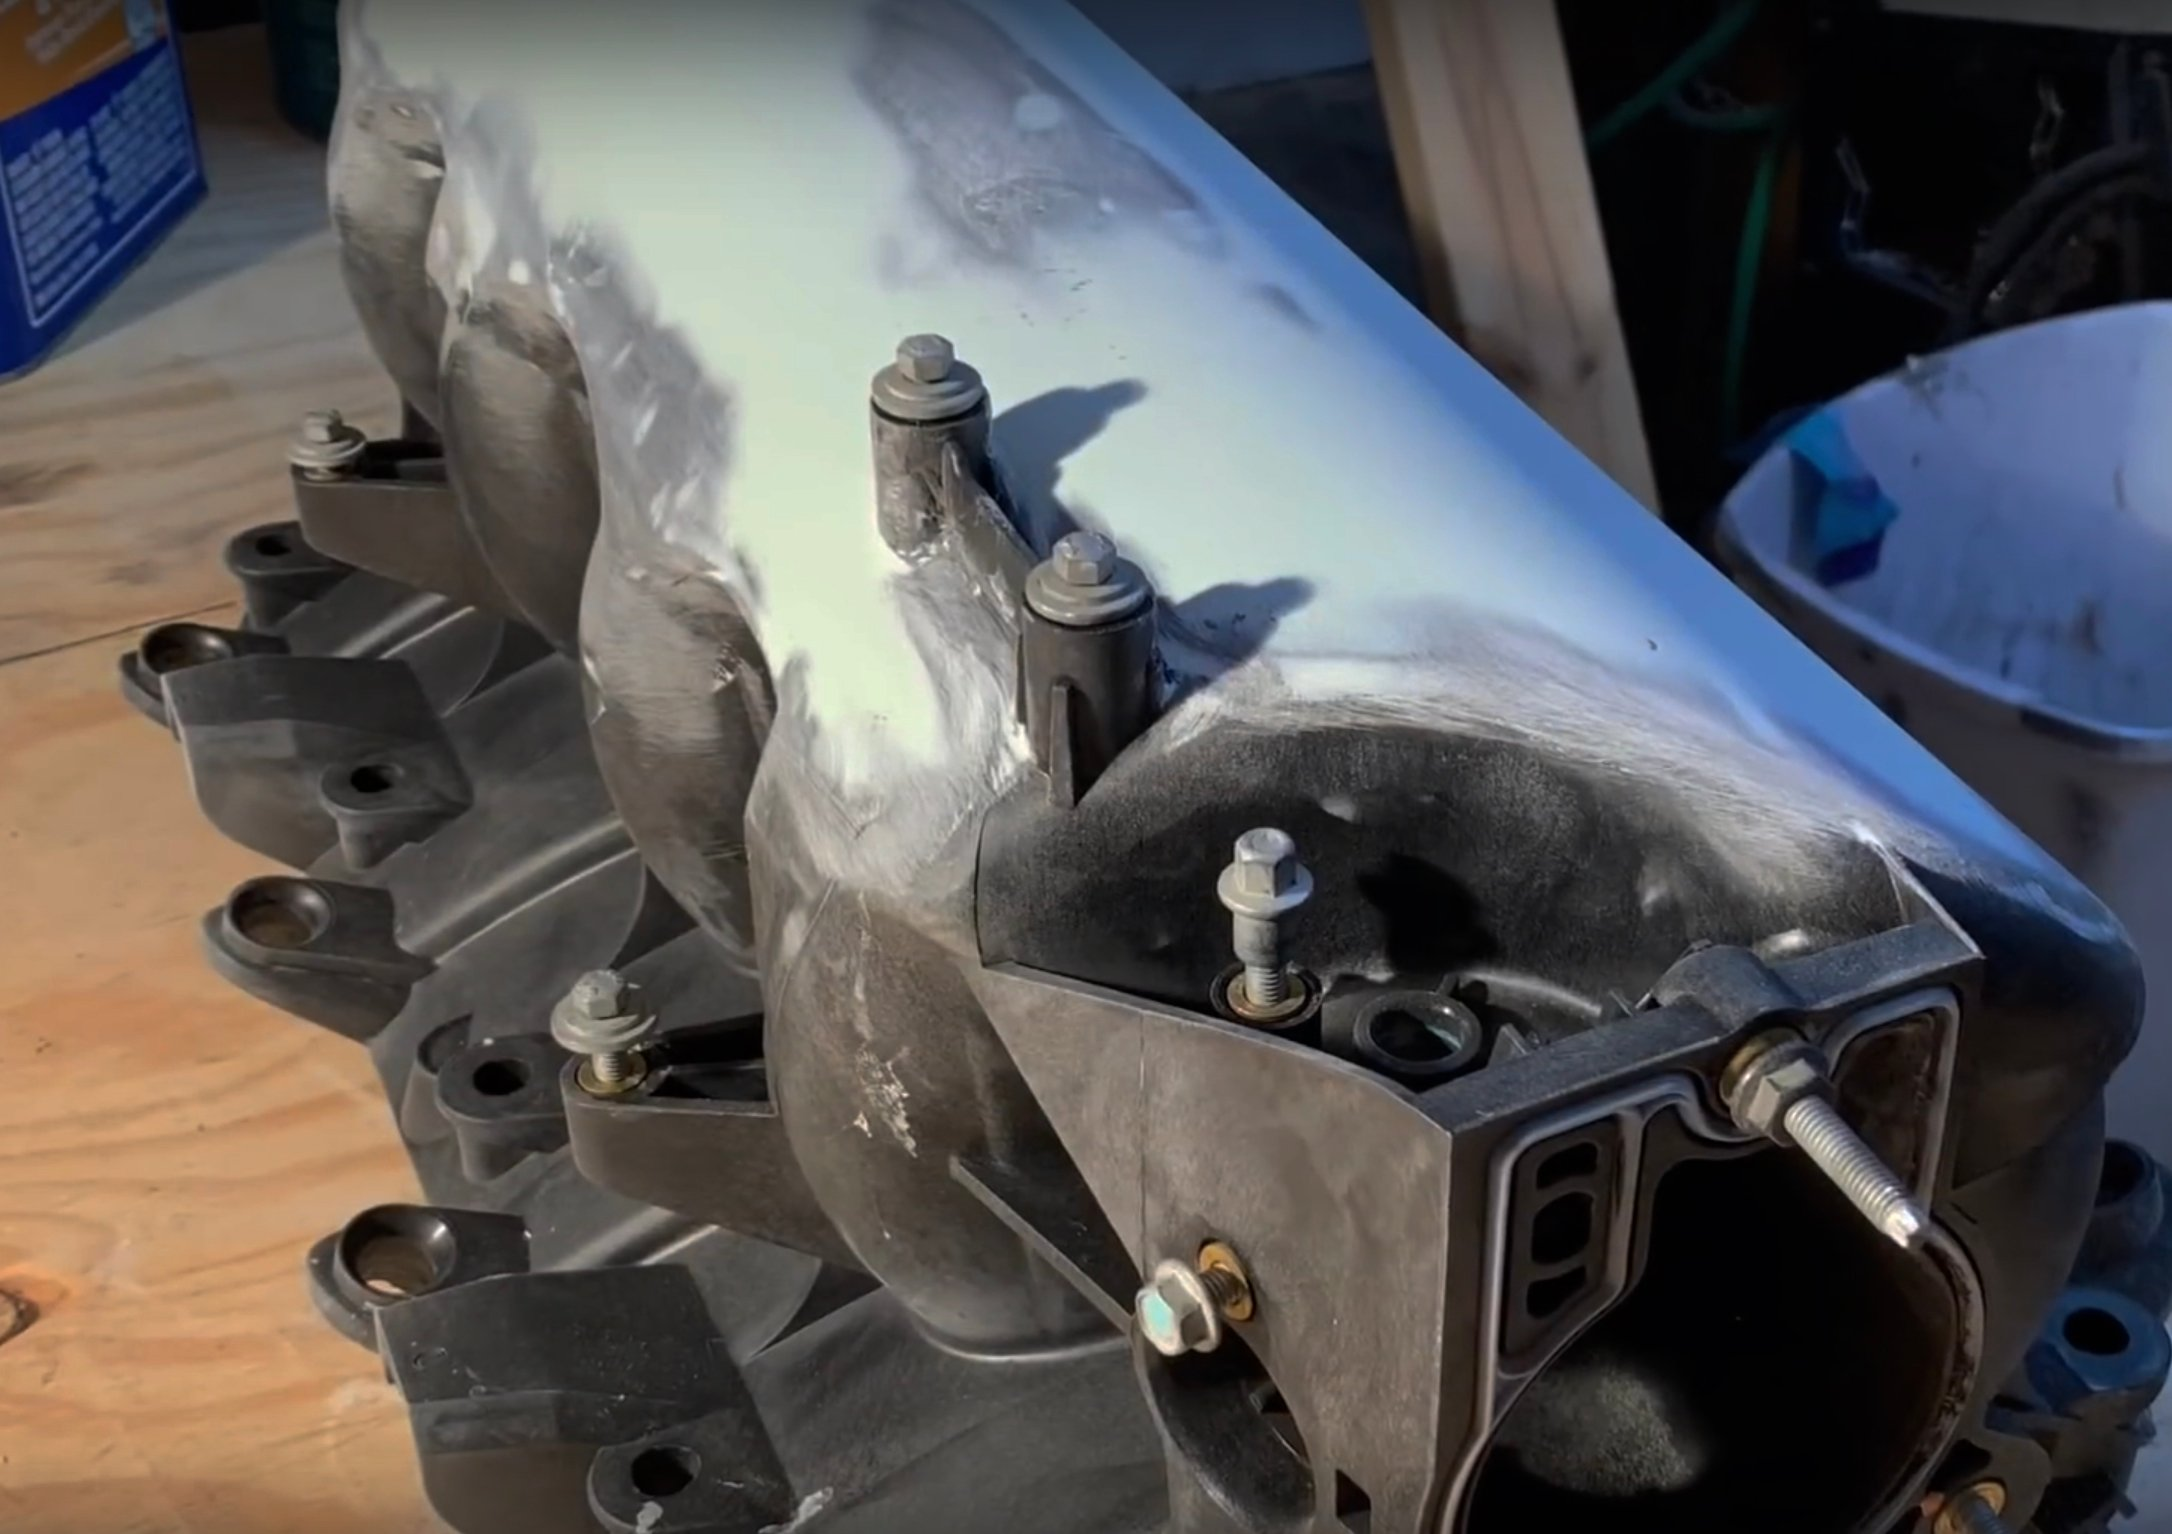 Video: DIY Plastic Welding to Shave an LS Truck Manifold